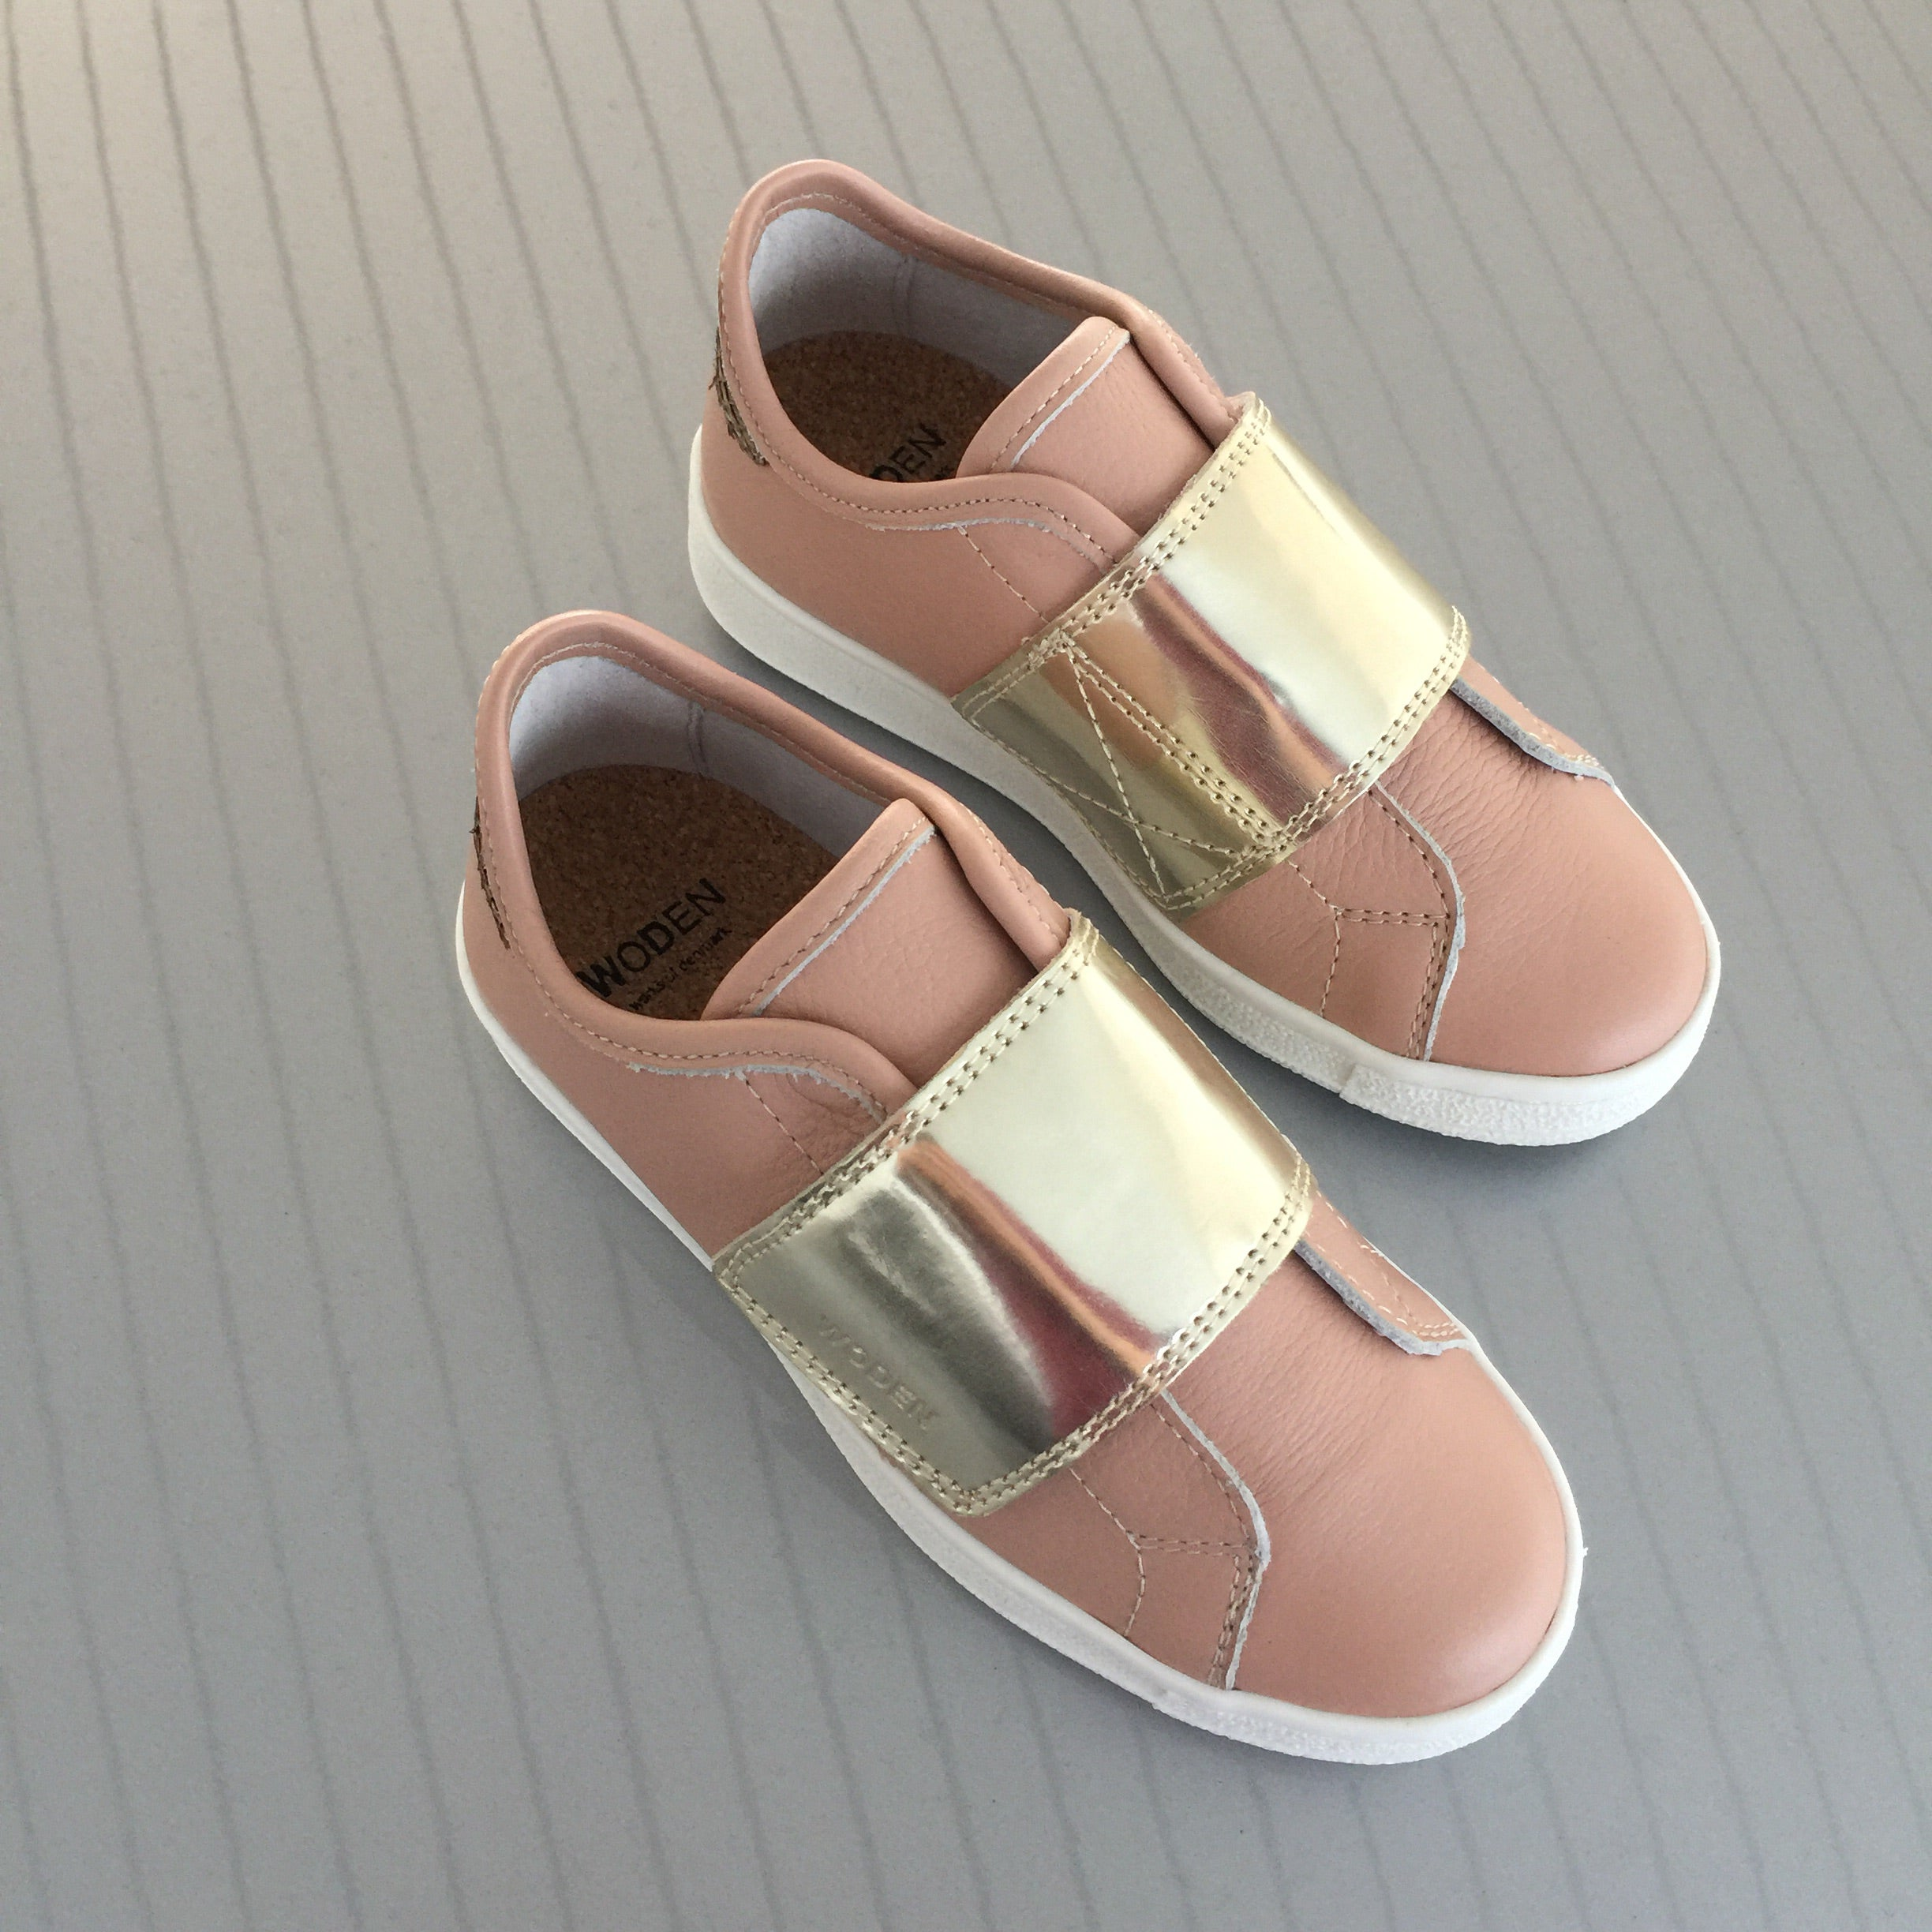 Woden Wonder - Sneakers, Wrap Wonder Metallic Kids - Powder Skies / Champagne